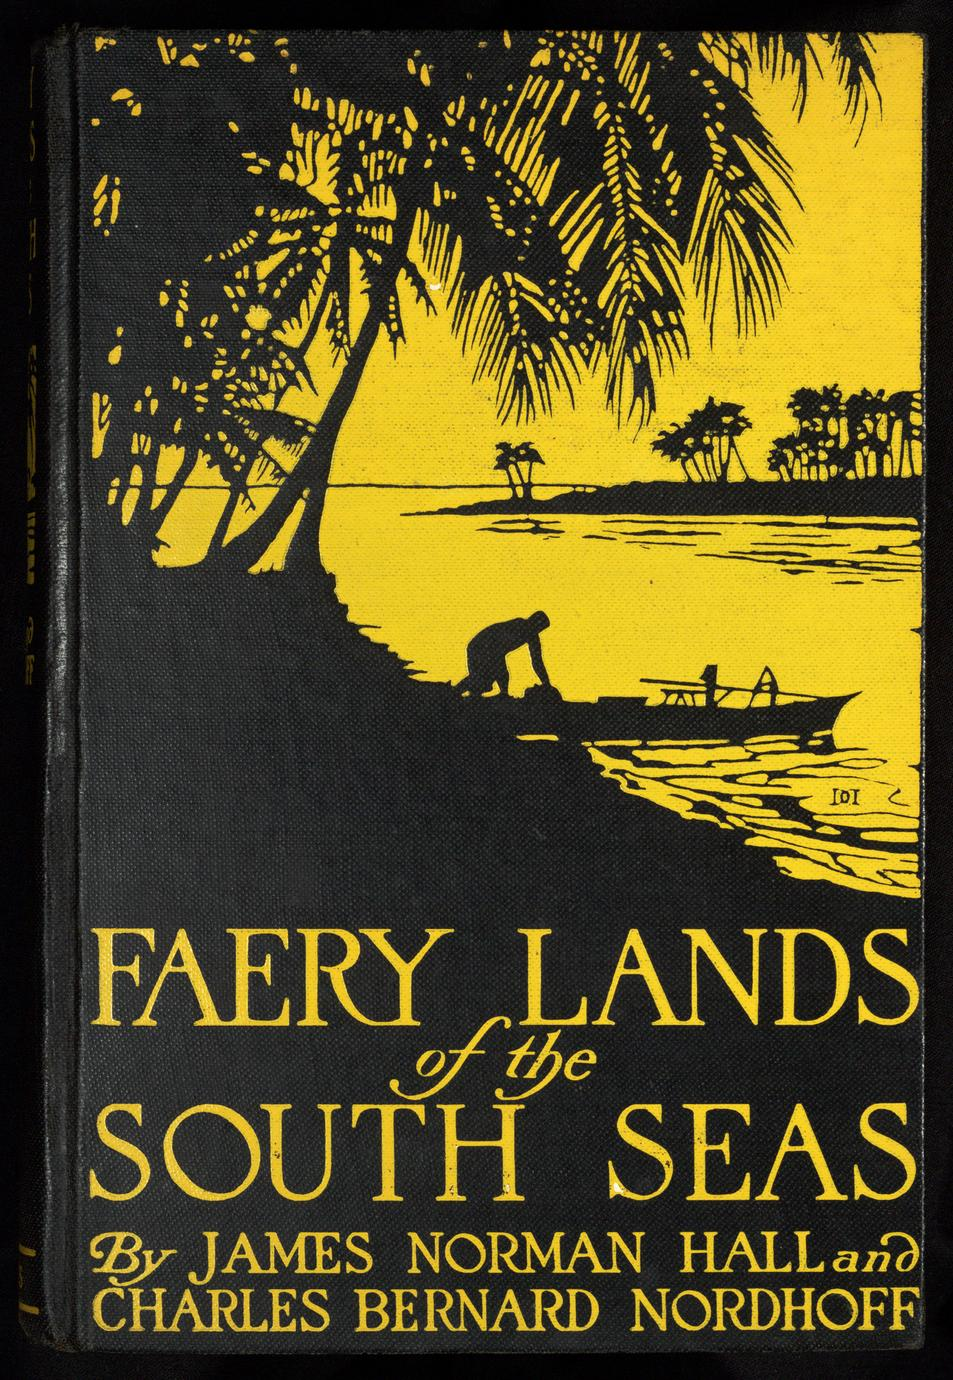 Faery lands of the South seas (1 of 5)